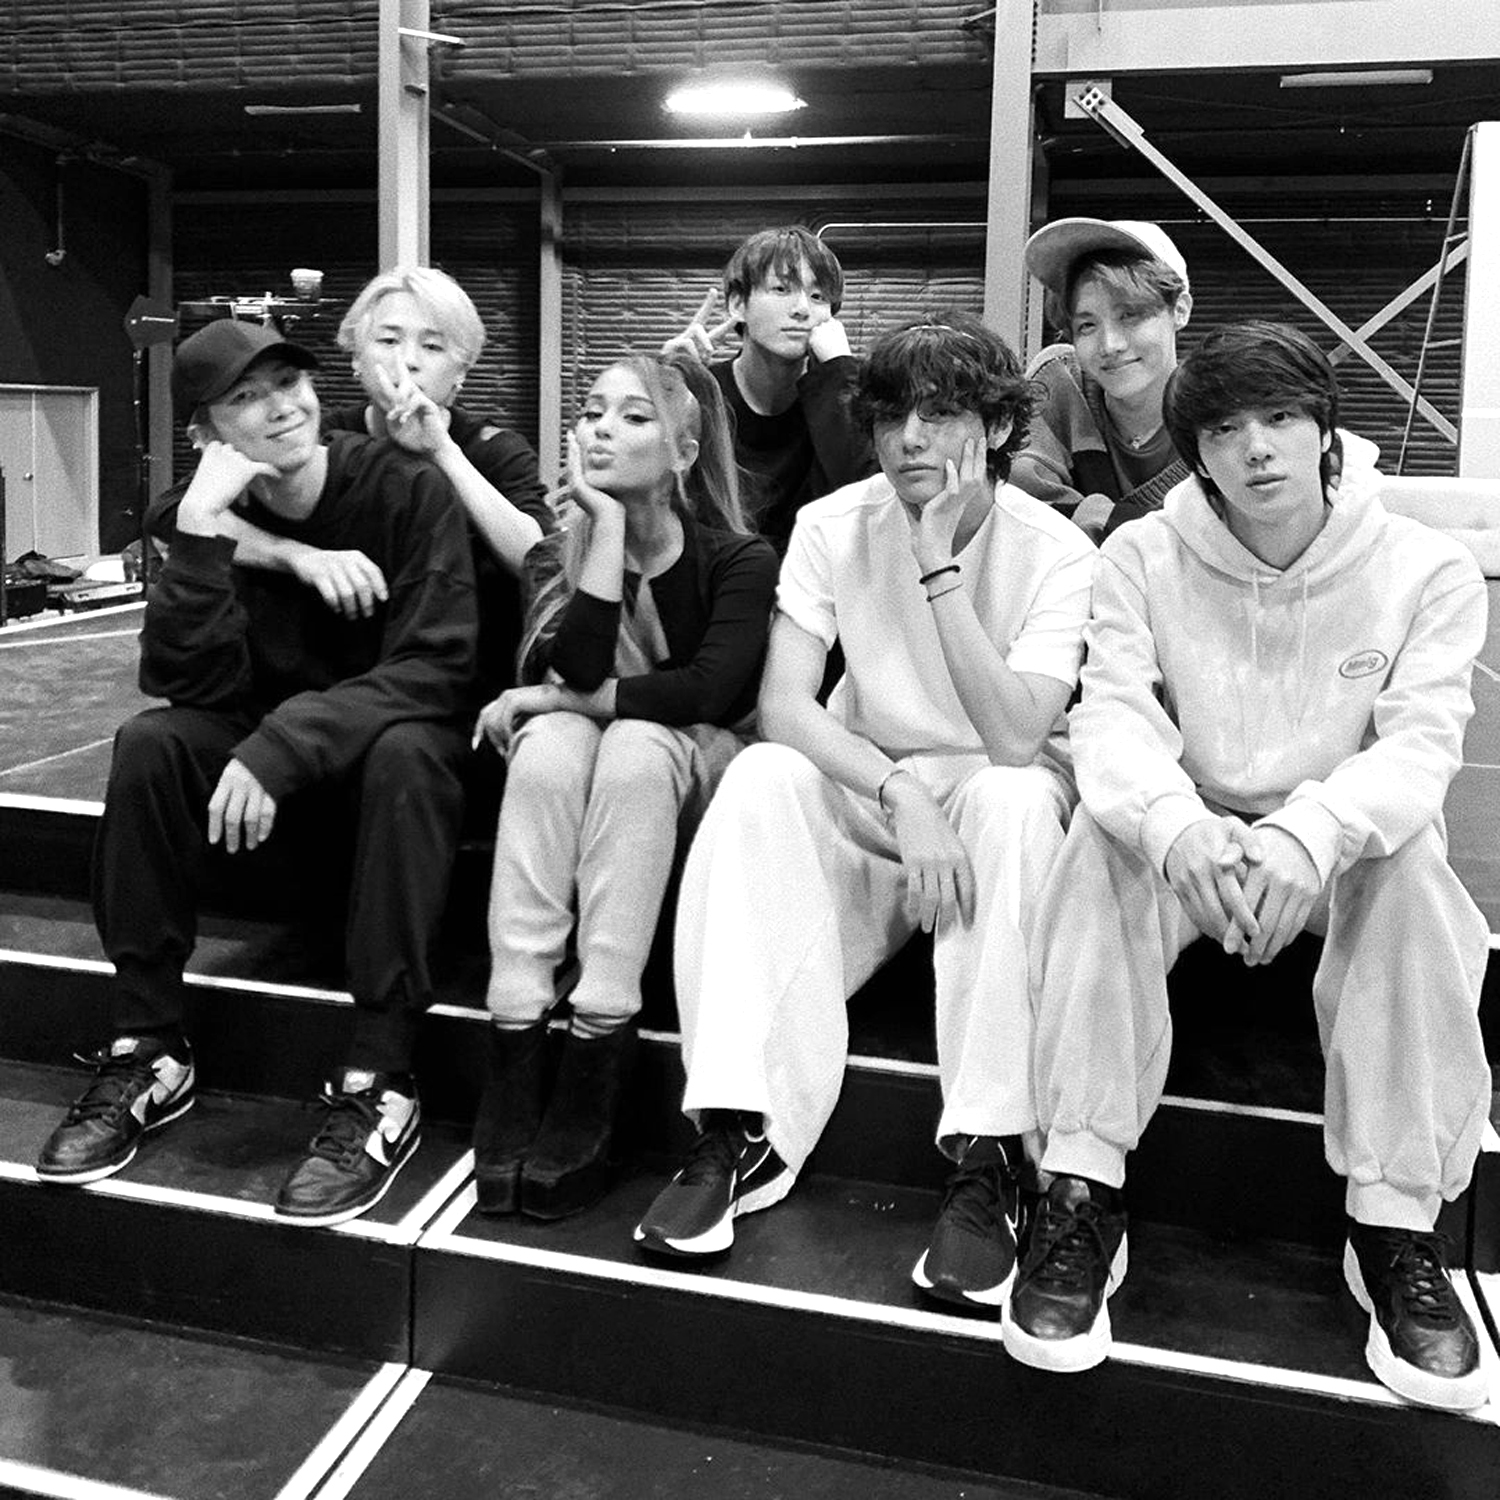 grammys 2020 ariana grande shares rehearsal picture with bts people com grammys 2020 ariana grande shares